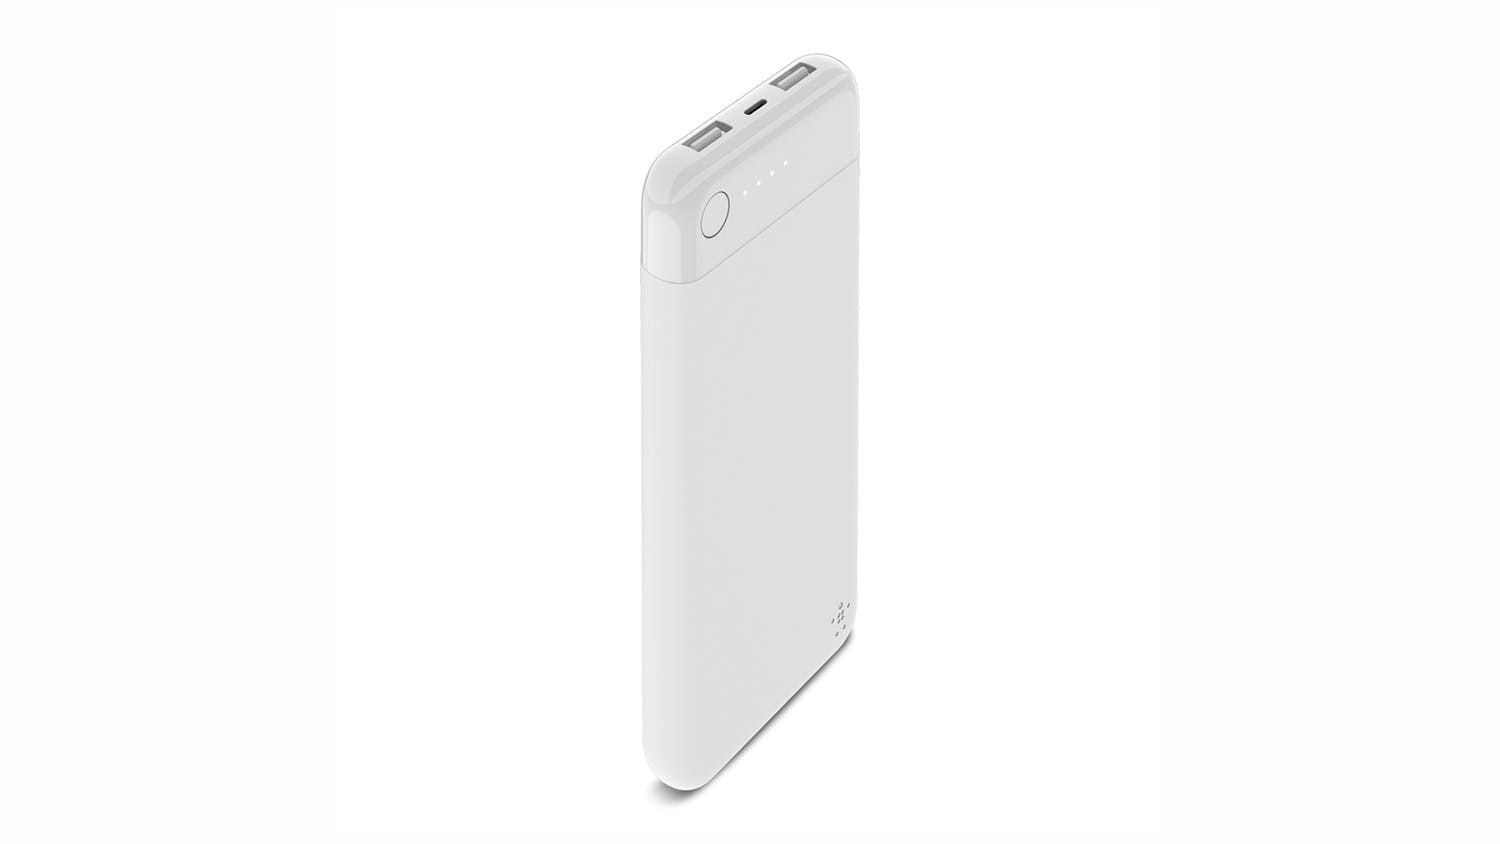 Belkin BOOST CHARGE 10,000mAh Power Bank - White